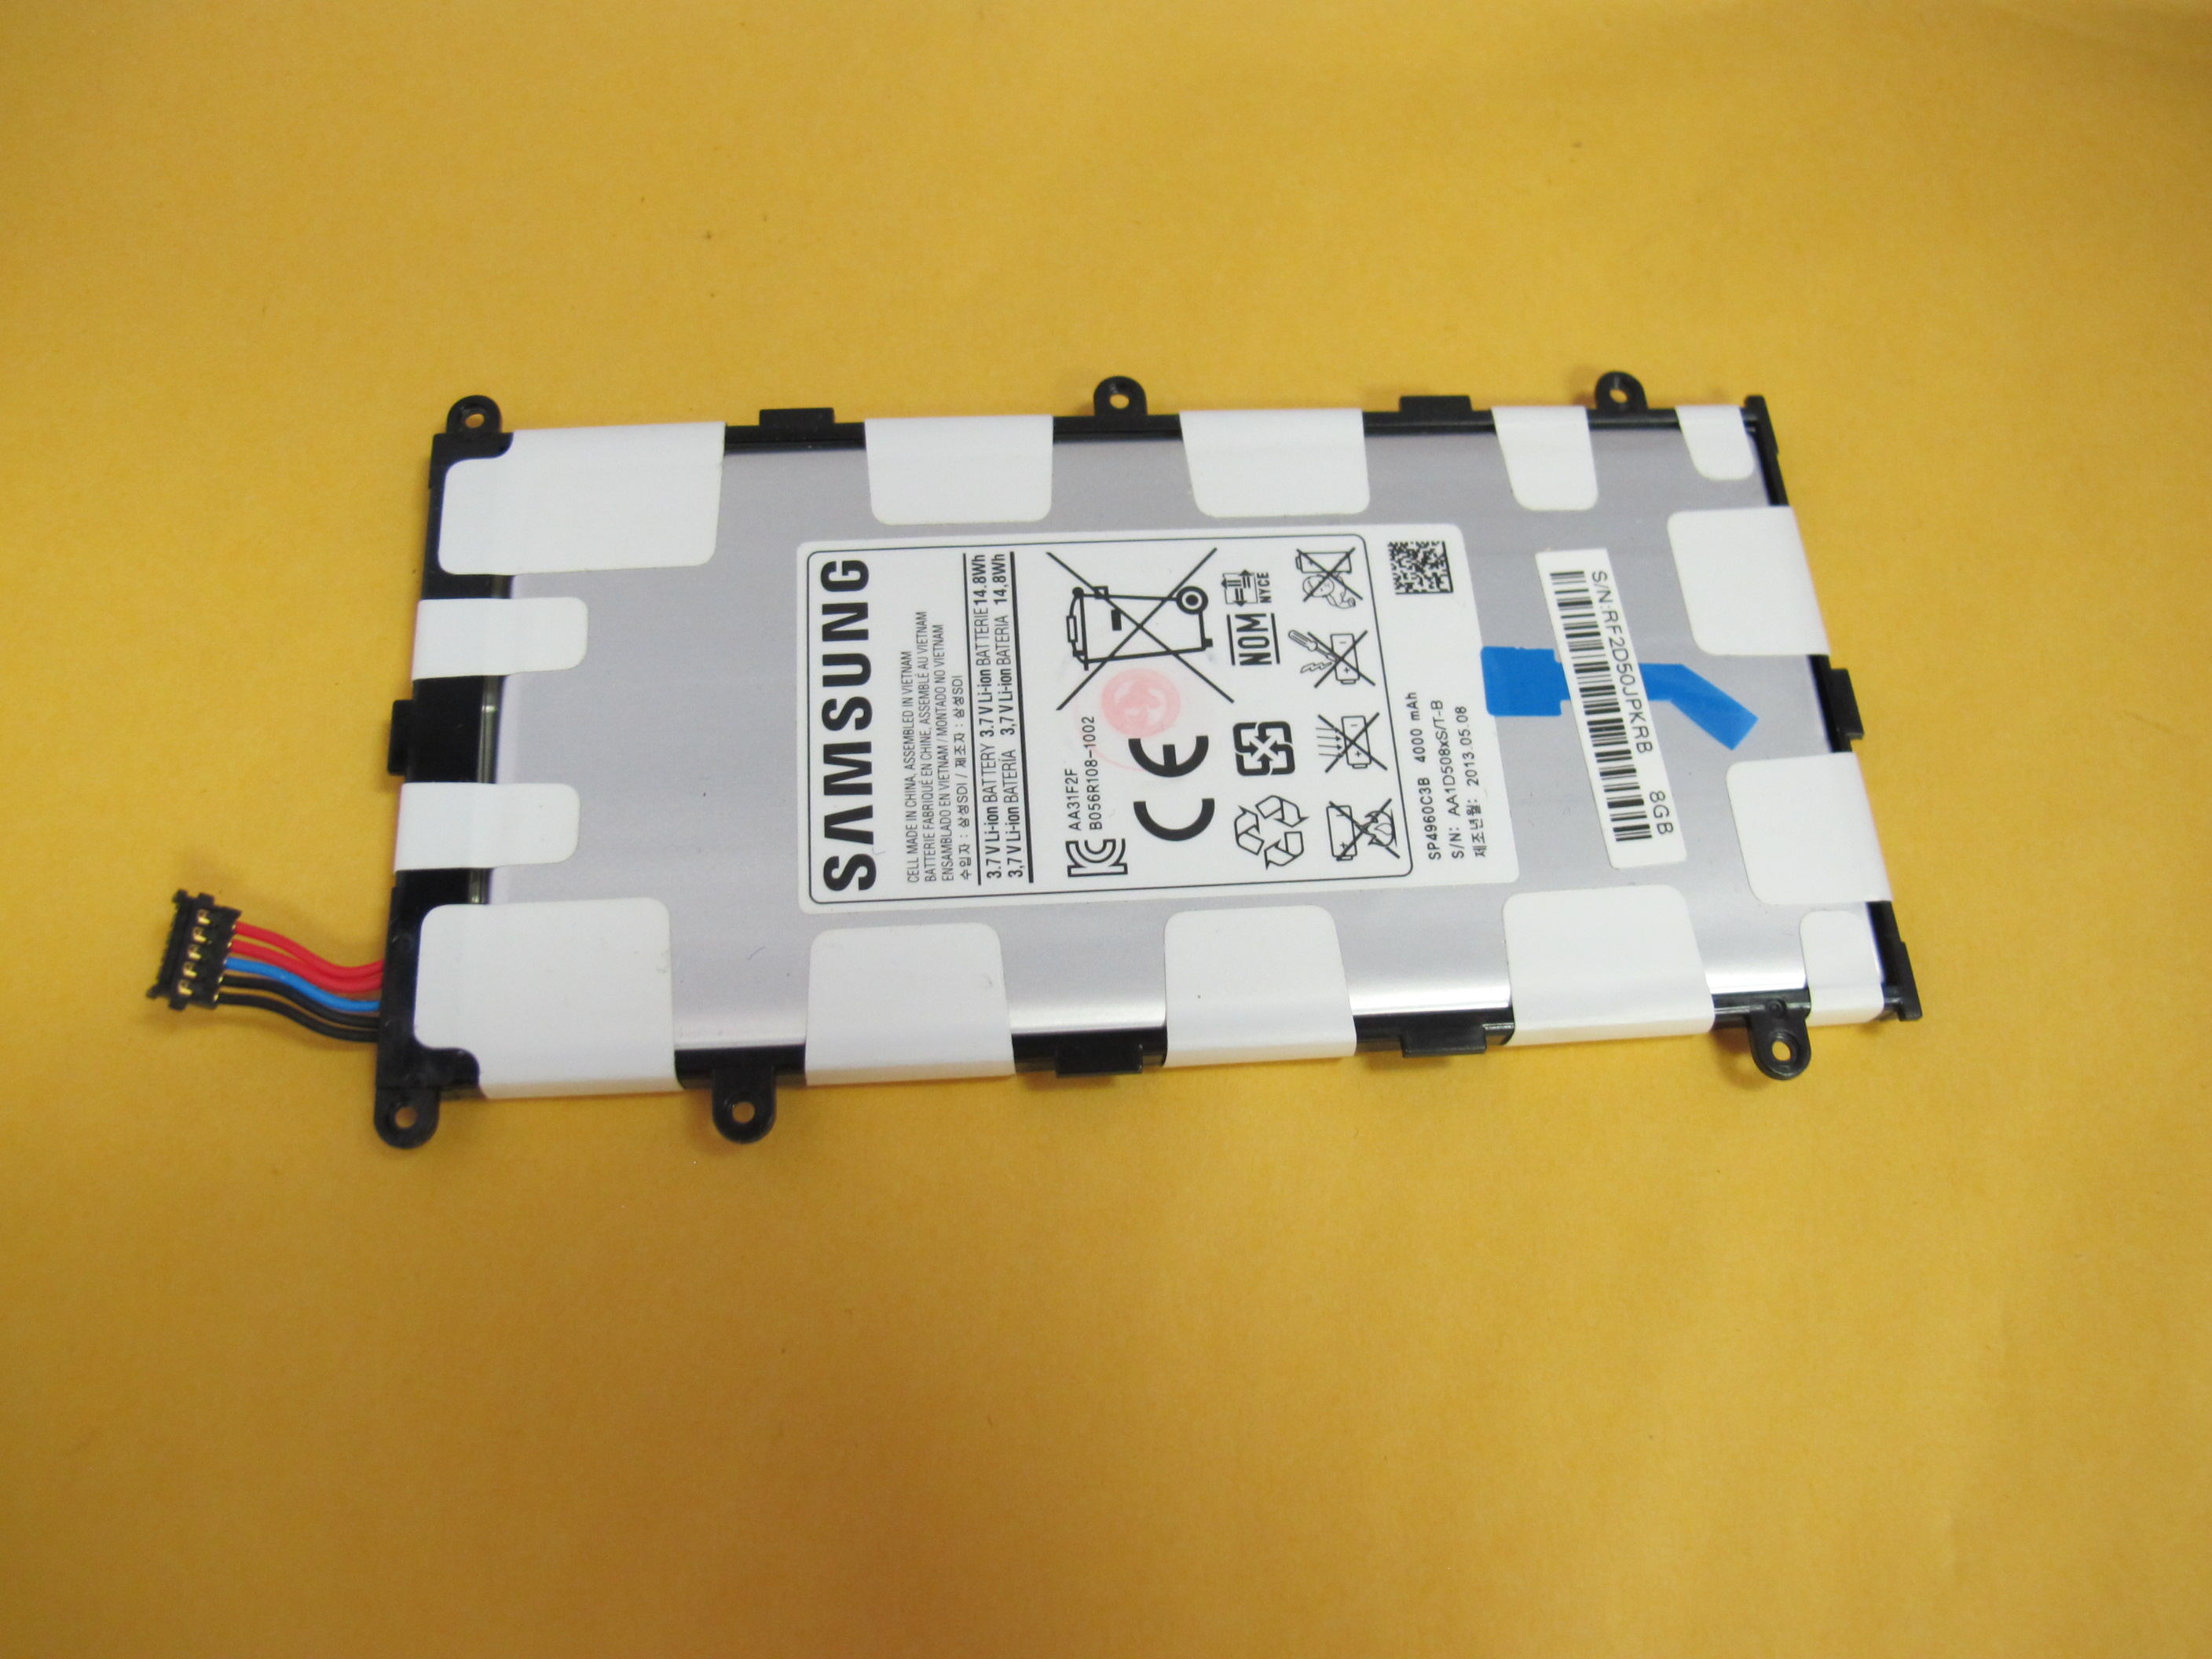 oem battery for samsung galaxy tab 2 7 0 p3100 p3110 p3113 4000mah sp4960c3b ebay. Black Bedroom Furniture Sets. Home Design Ideas